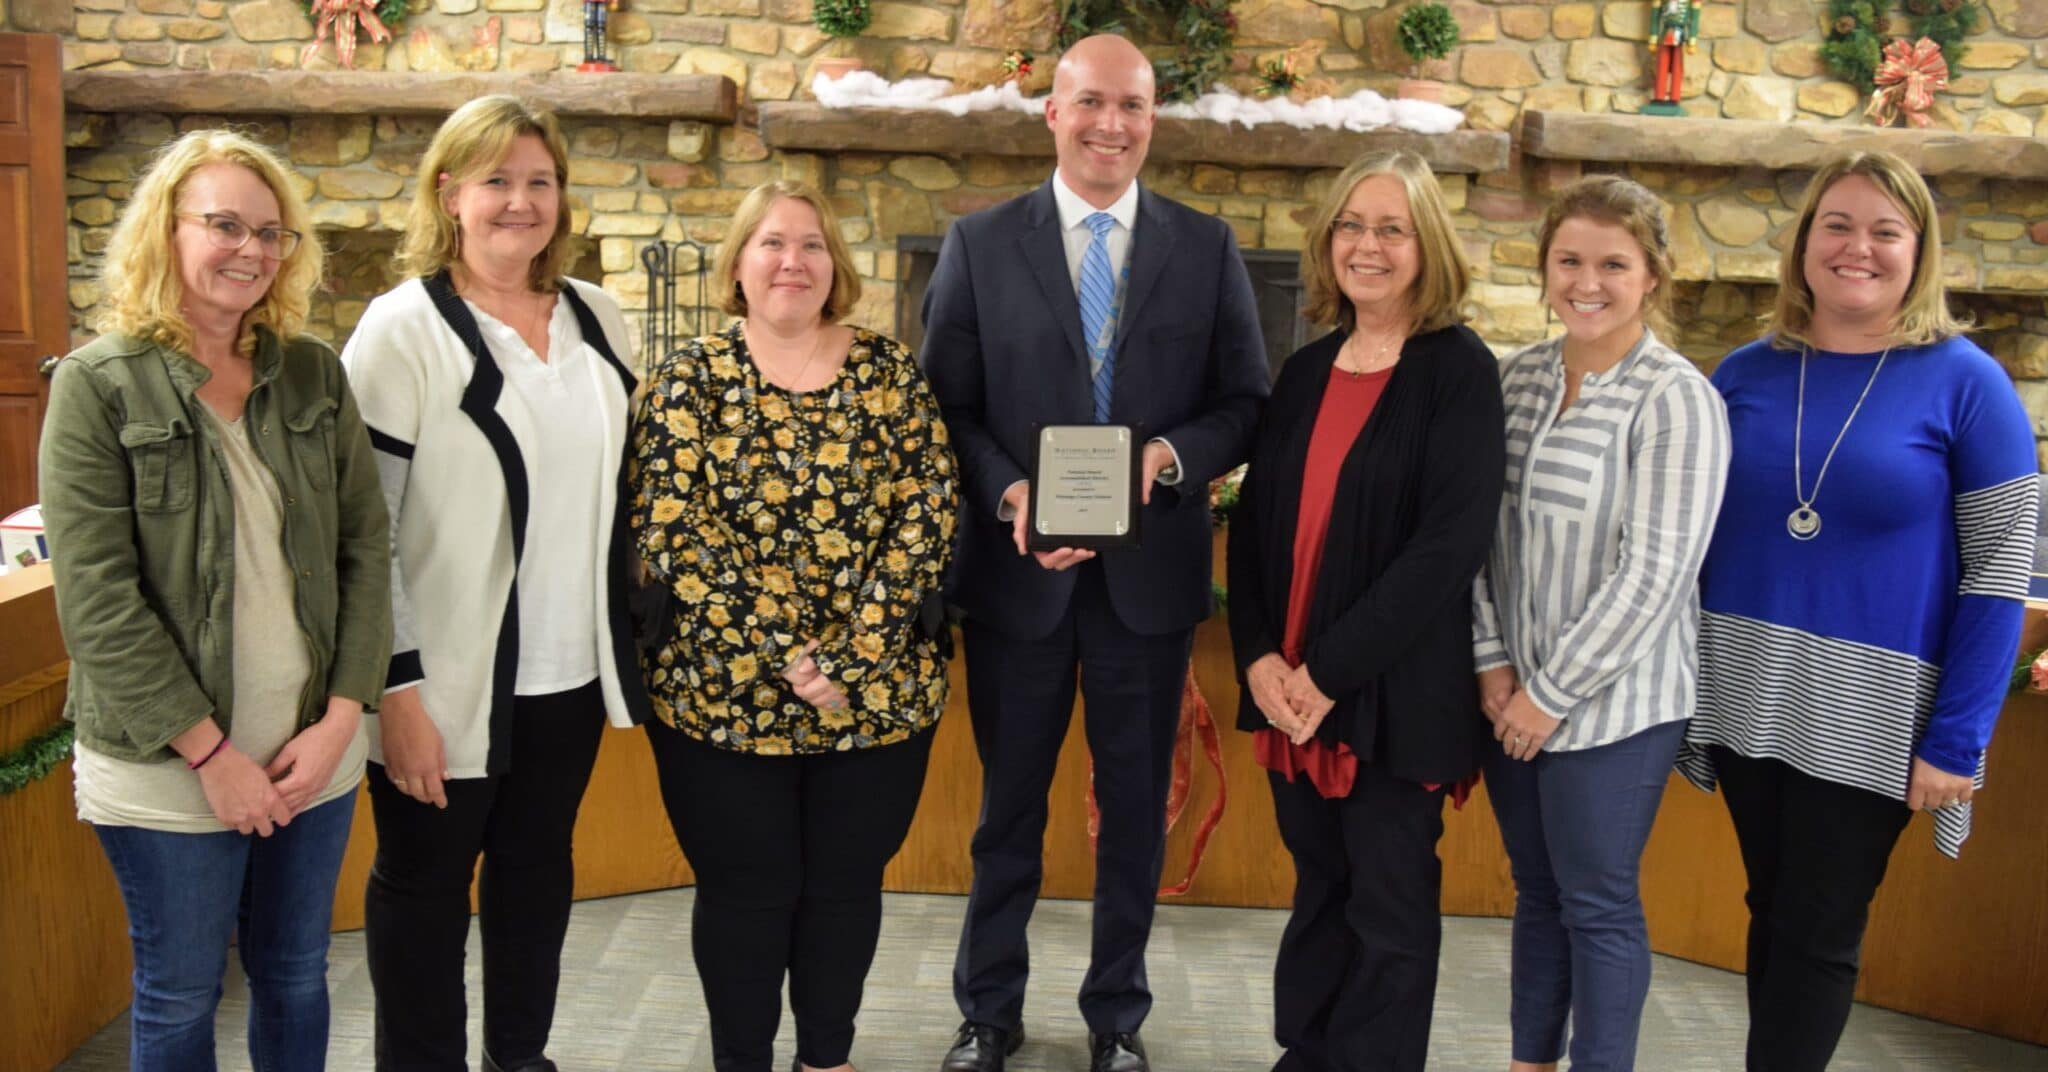 Watauga County Schools named Accomplished District by National Board for Professional Teaching Standards